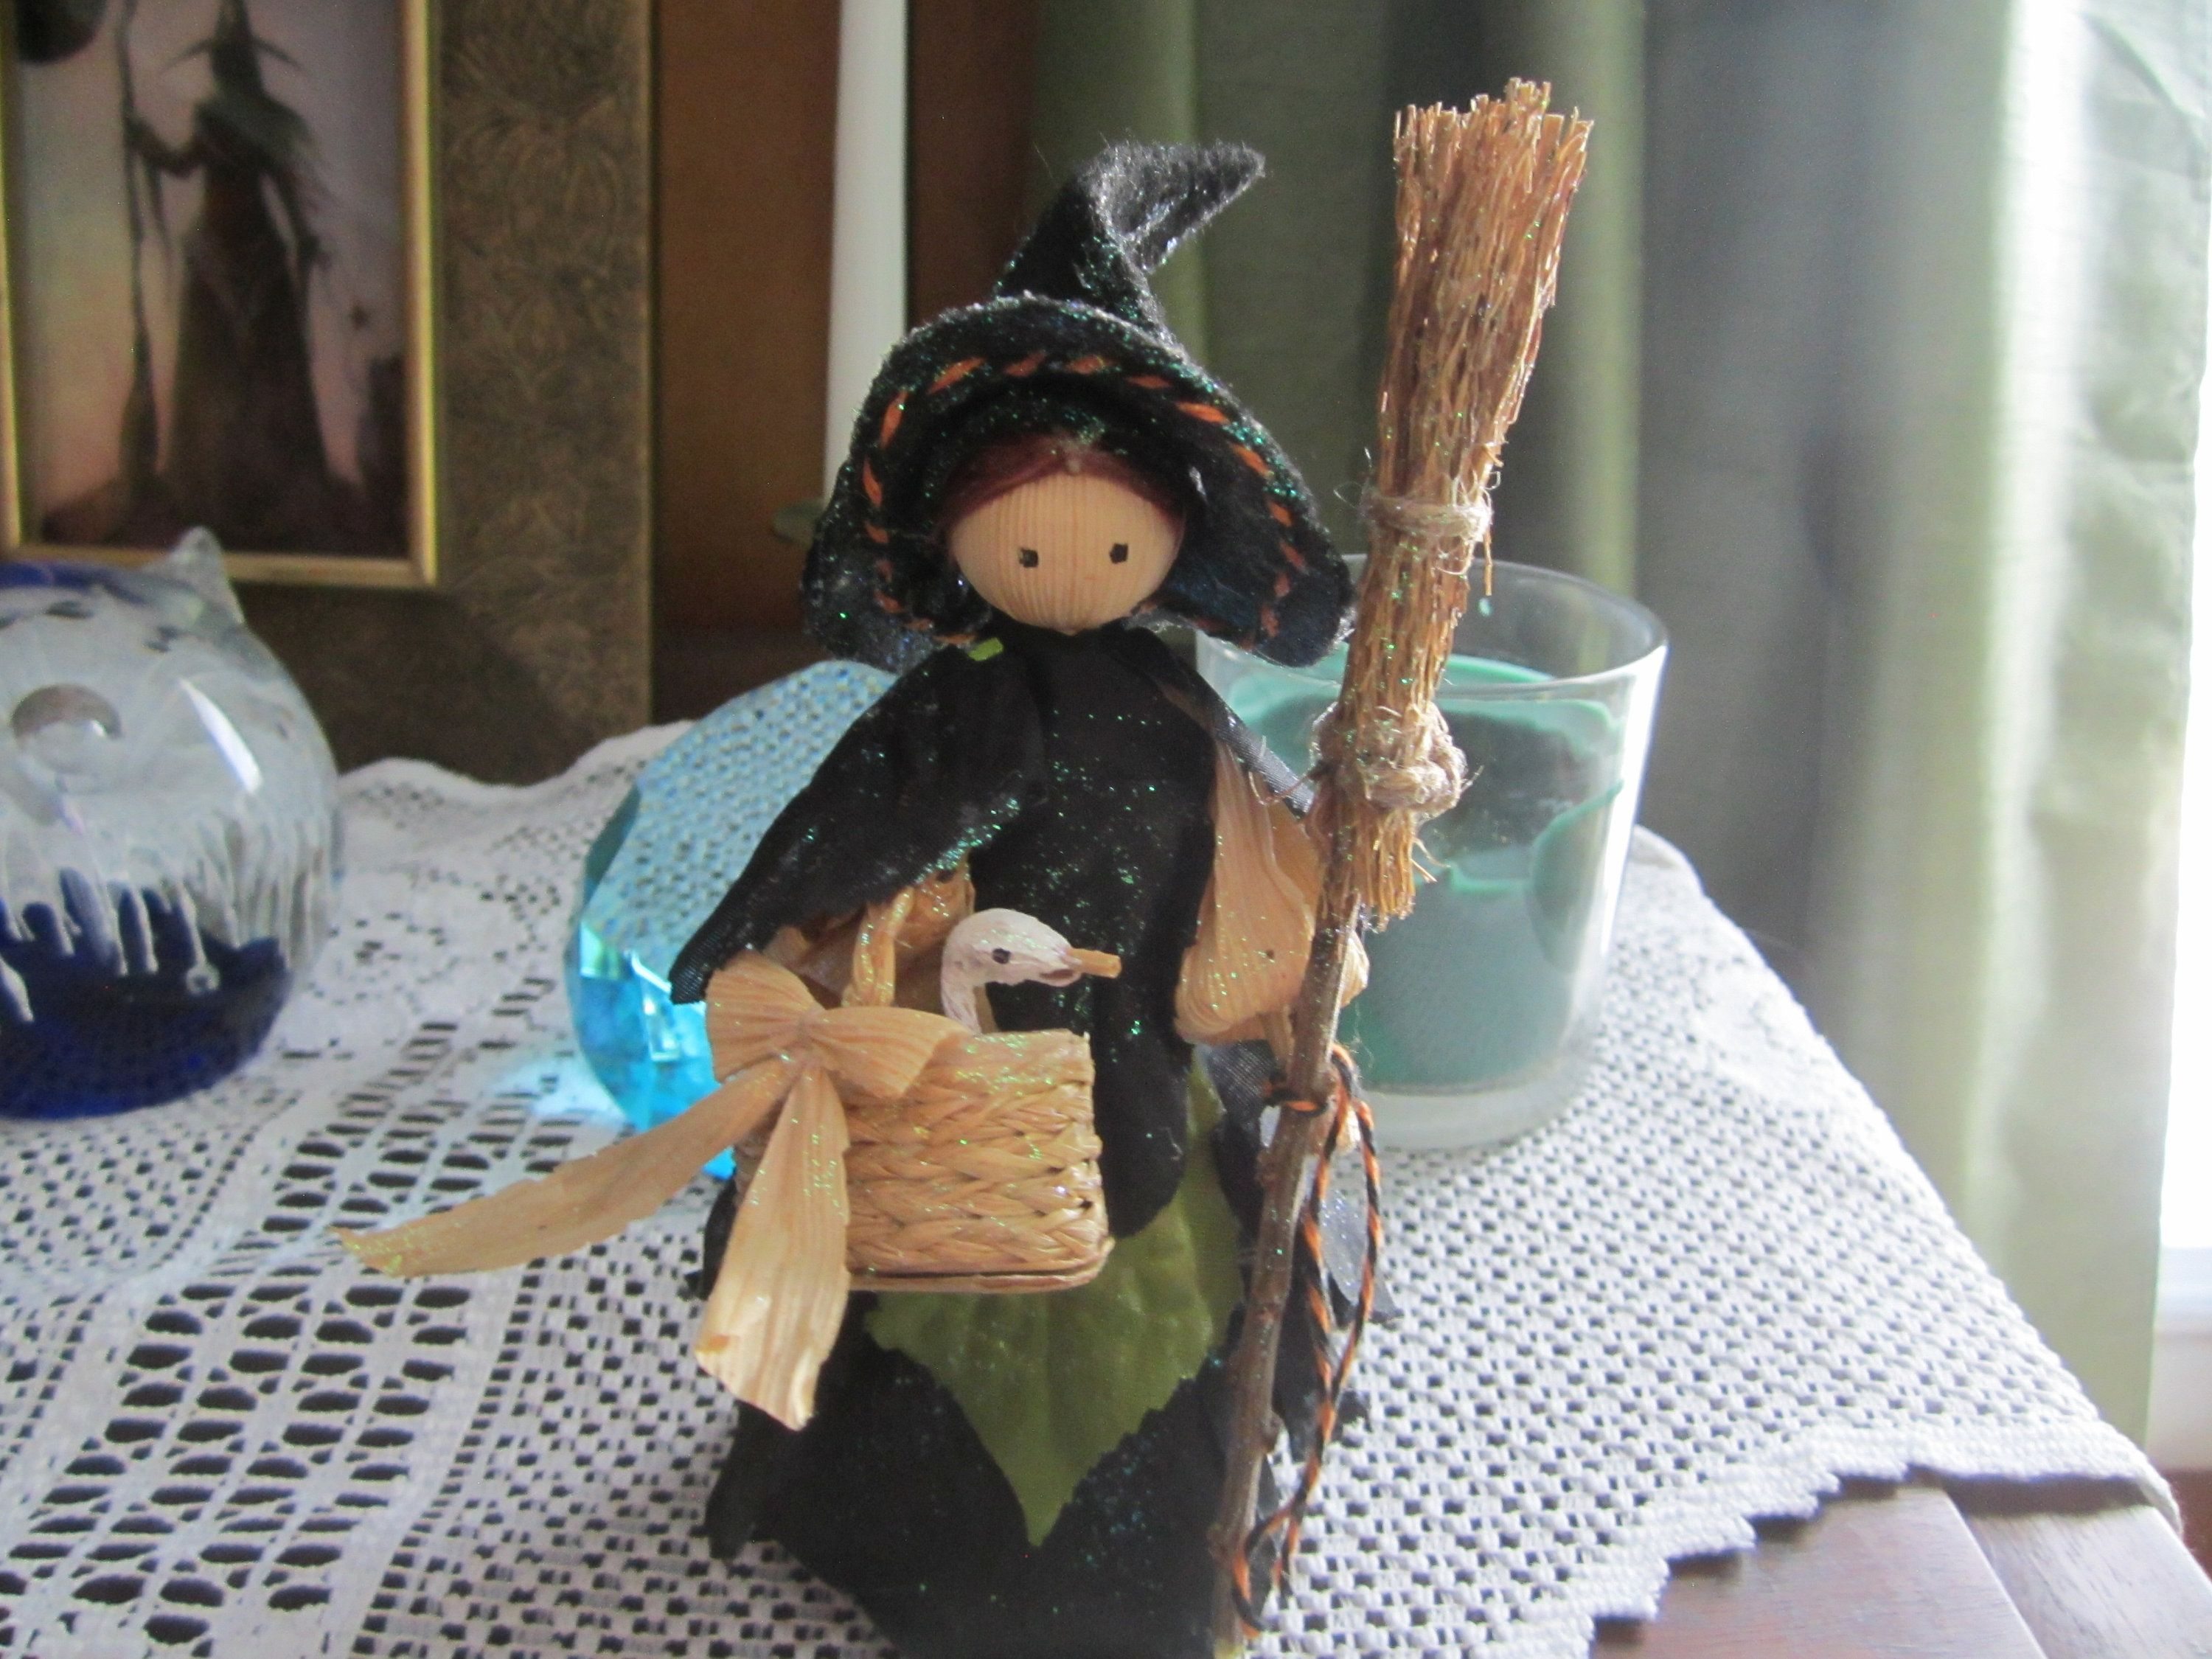 Kitchen Witch with Duck, Corn Doll Witch, Halloween Witch, Witchy Decor,Collectable Corn Doll Witch, Wiccan Decor, Halloween Decor, Witch #wiccandecor